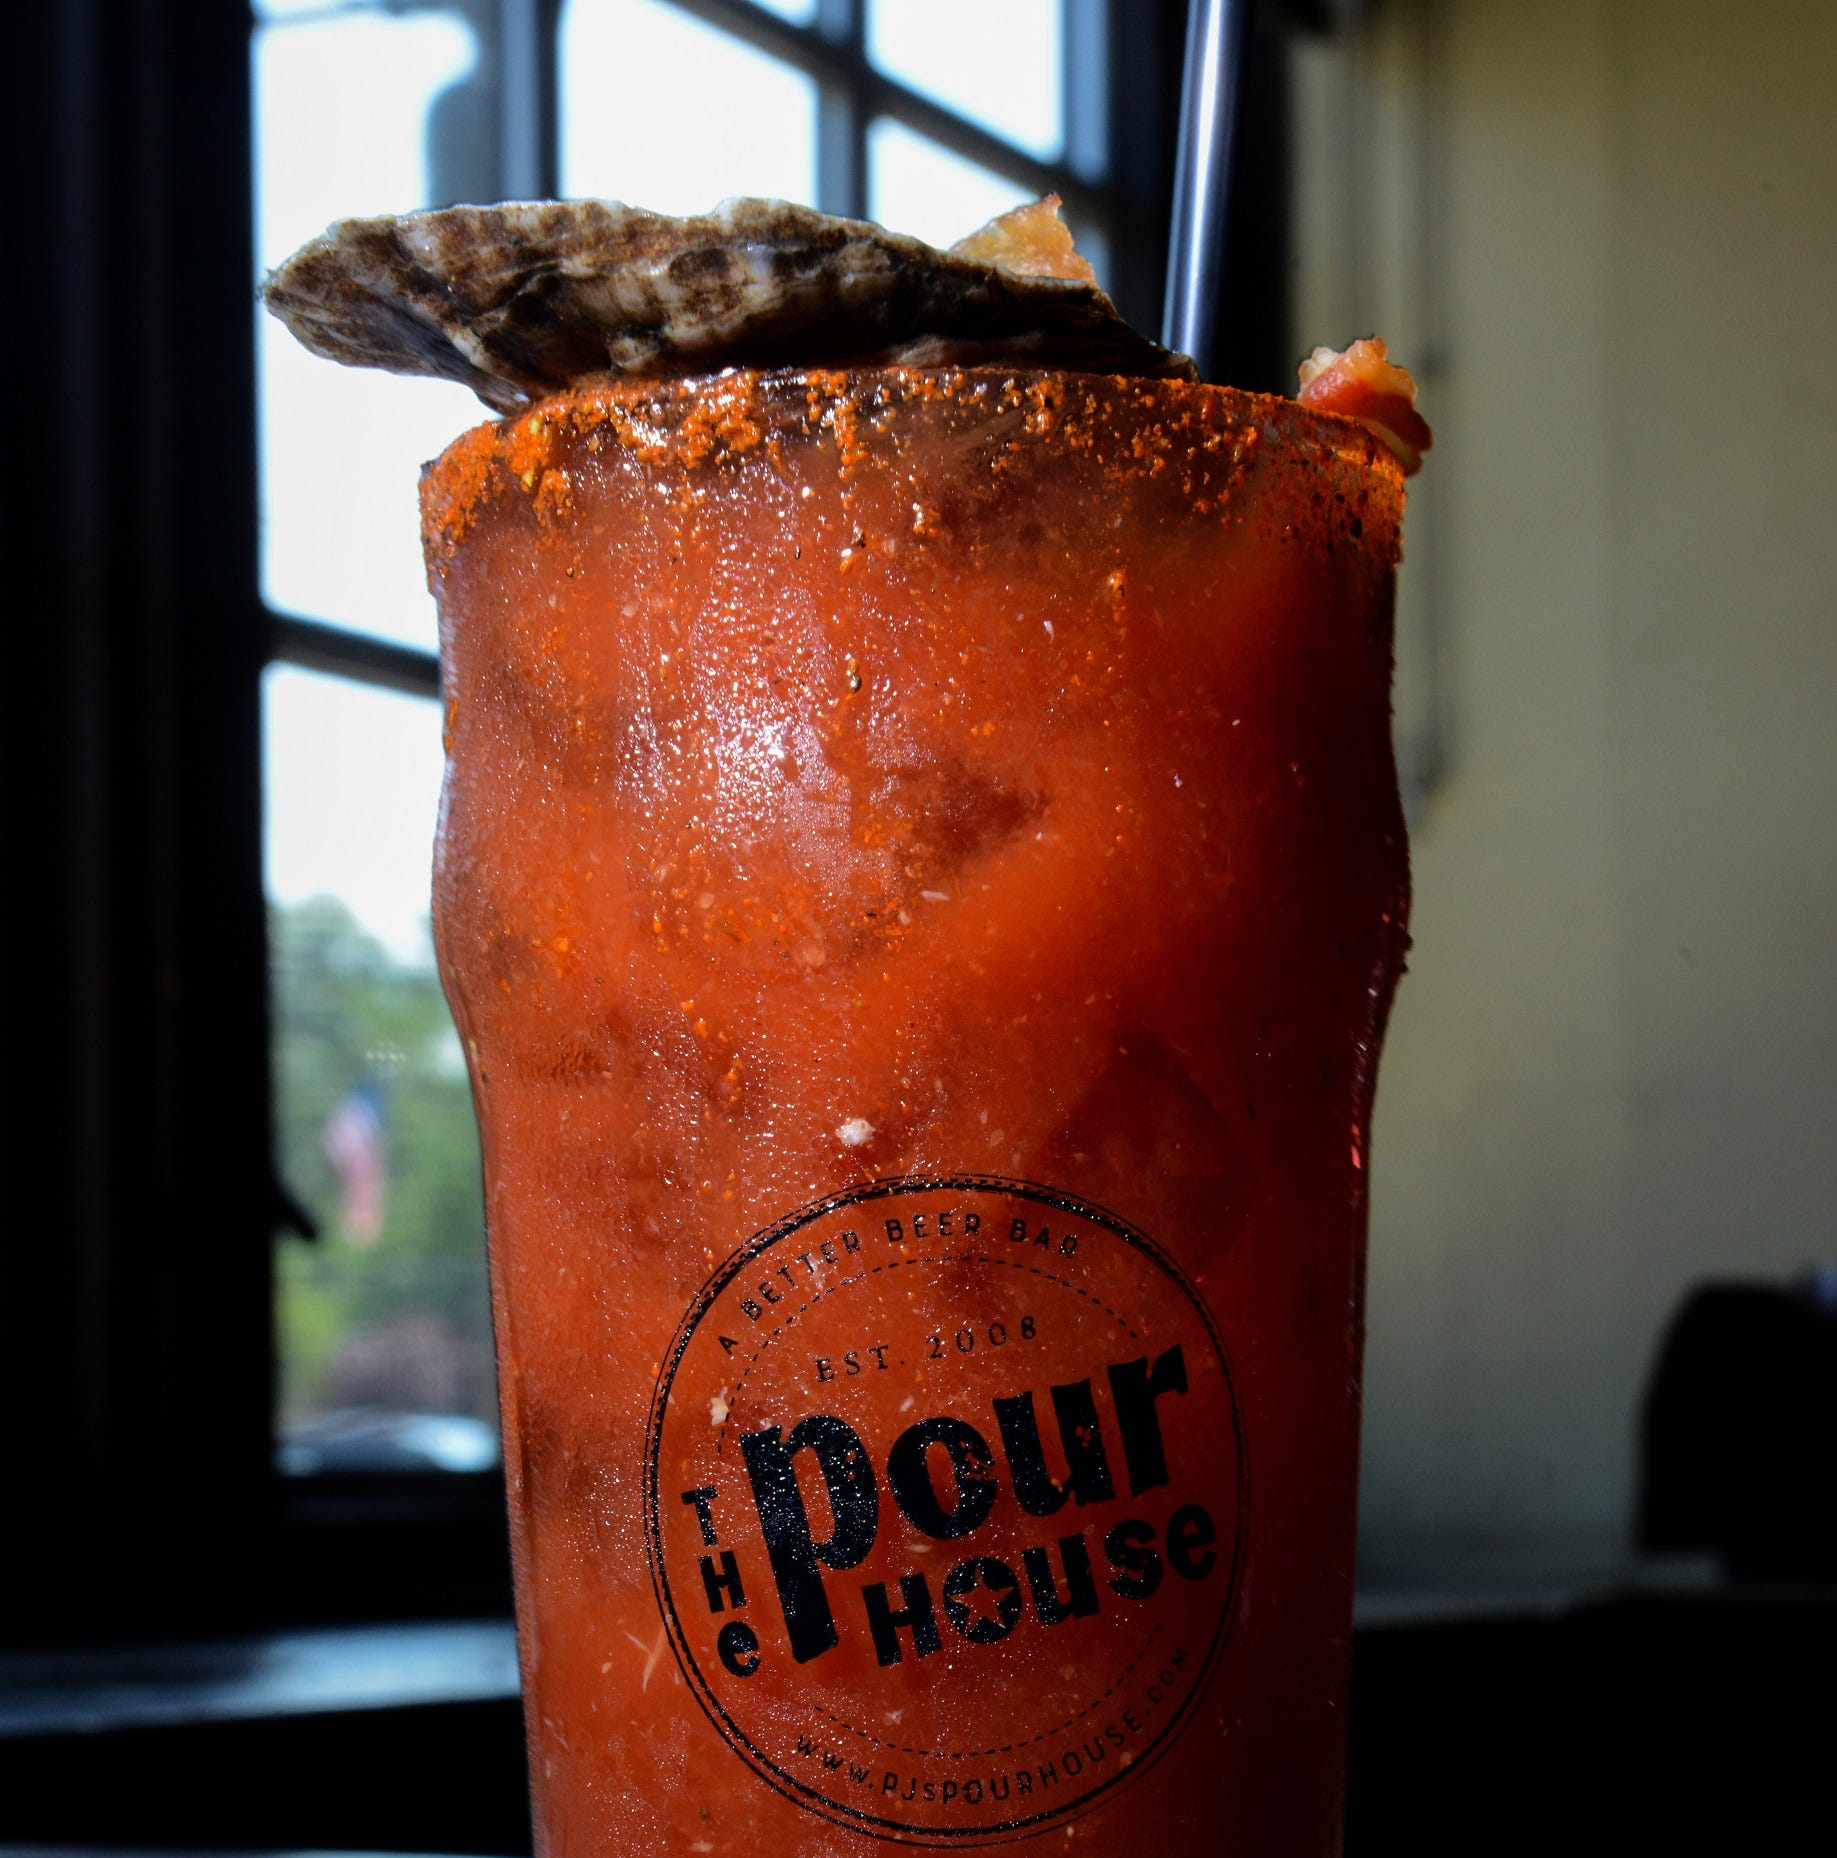 Brunch at The Pour House is family-friendly, with a little hair of the dog